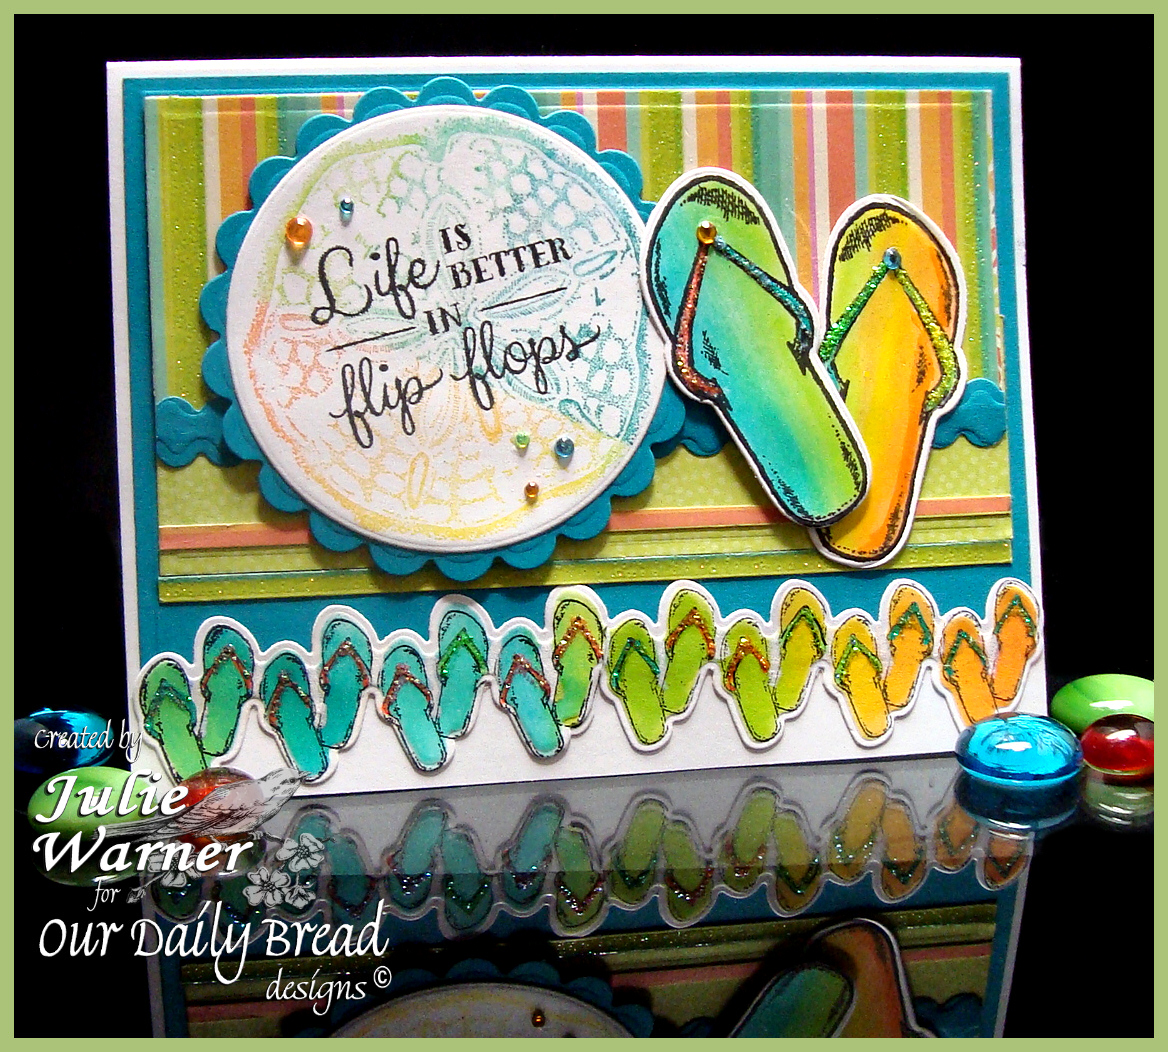 Stamps - Our Daily Bread Designs Flip Flop Fun, Life is Better, Sand Dollar, ODBD Custom Flip Flop Border Die, ODBD Custom Flip Flops Die, ODBD Custom Circle Ornament Dies